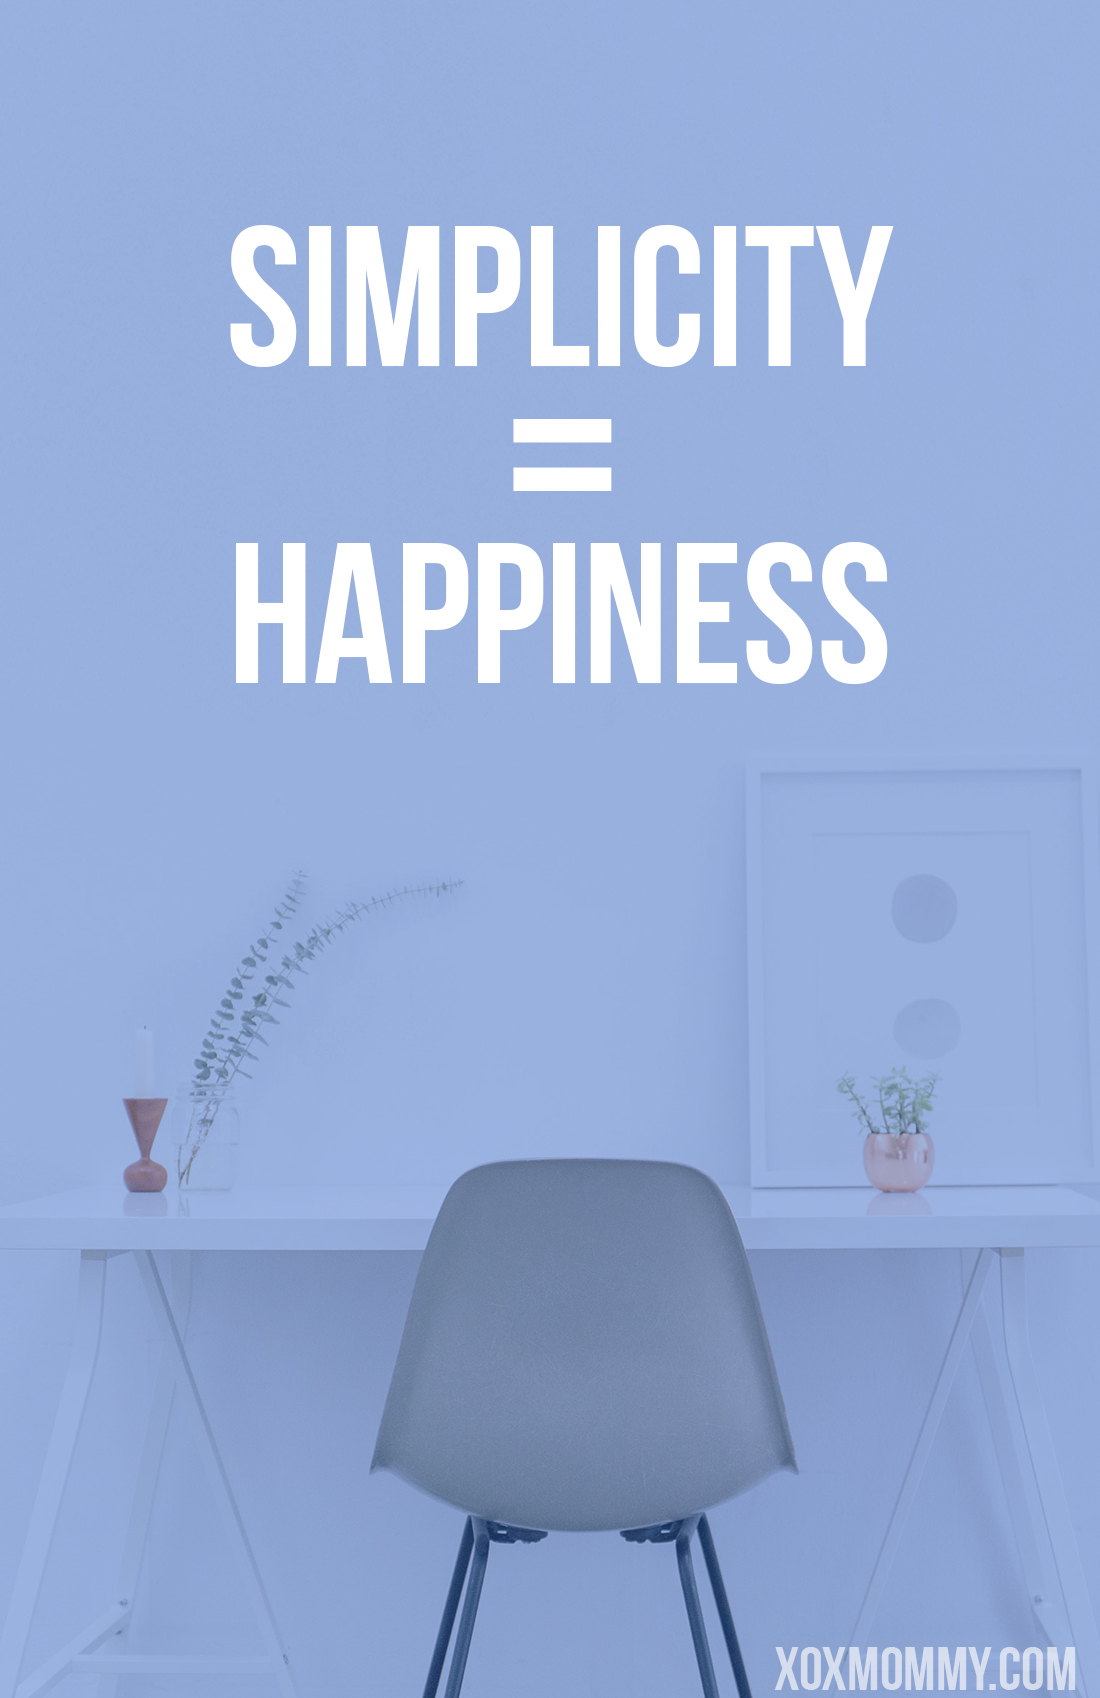 simplicity = happiness